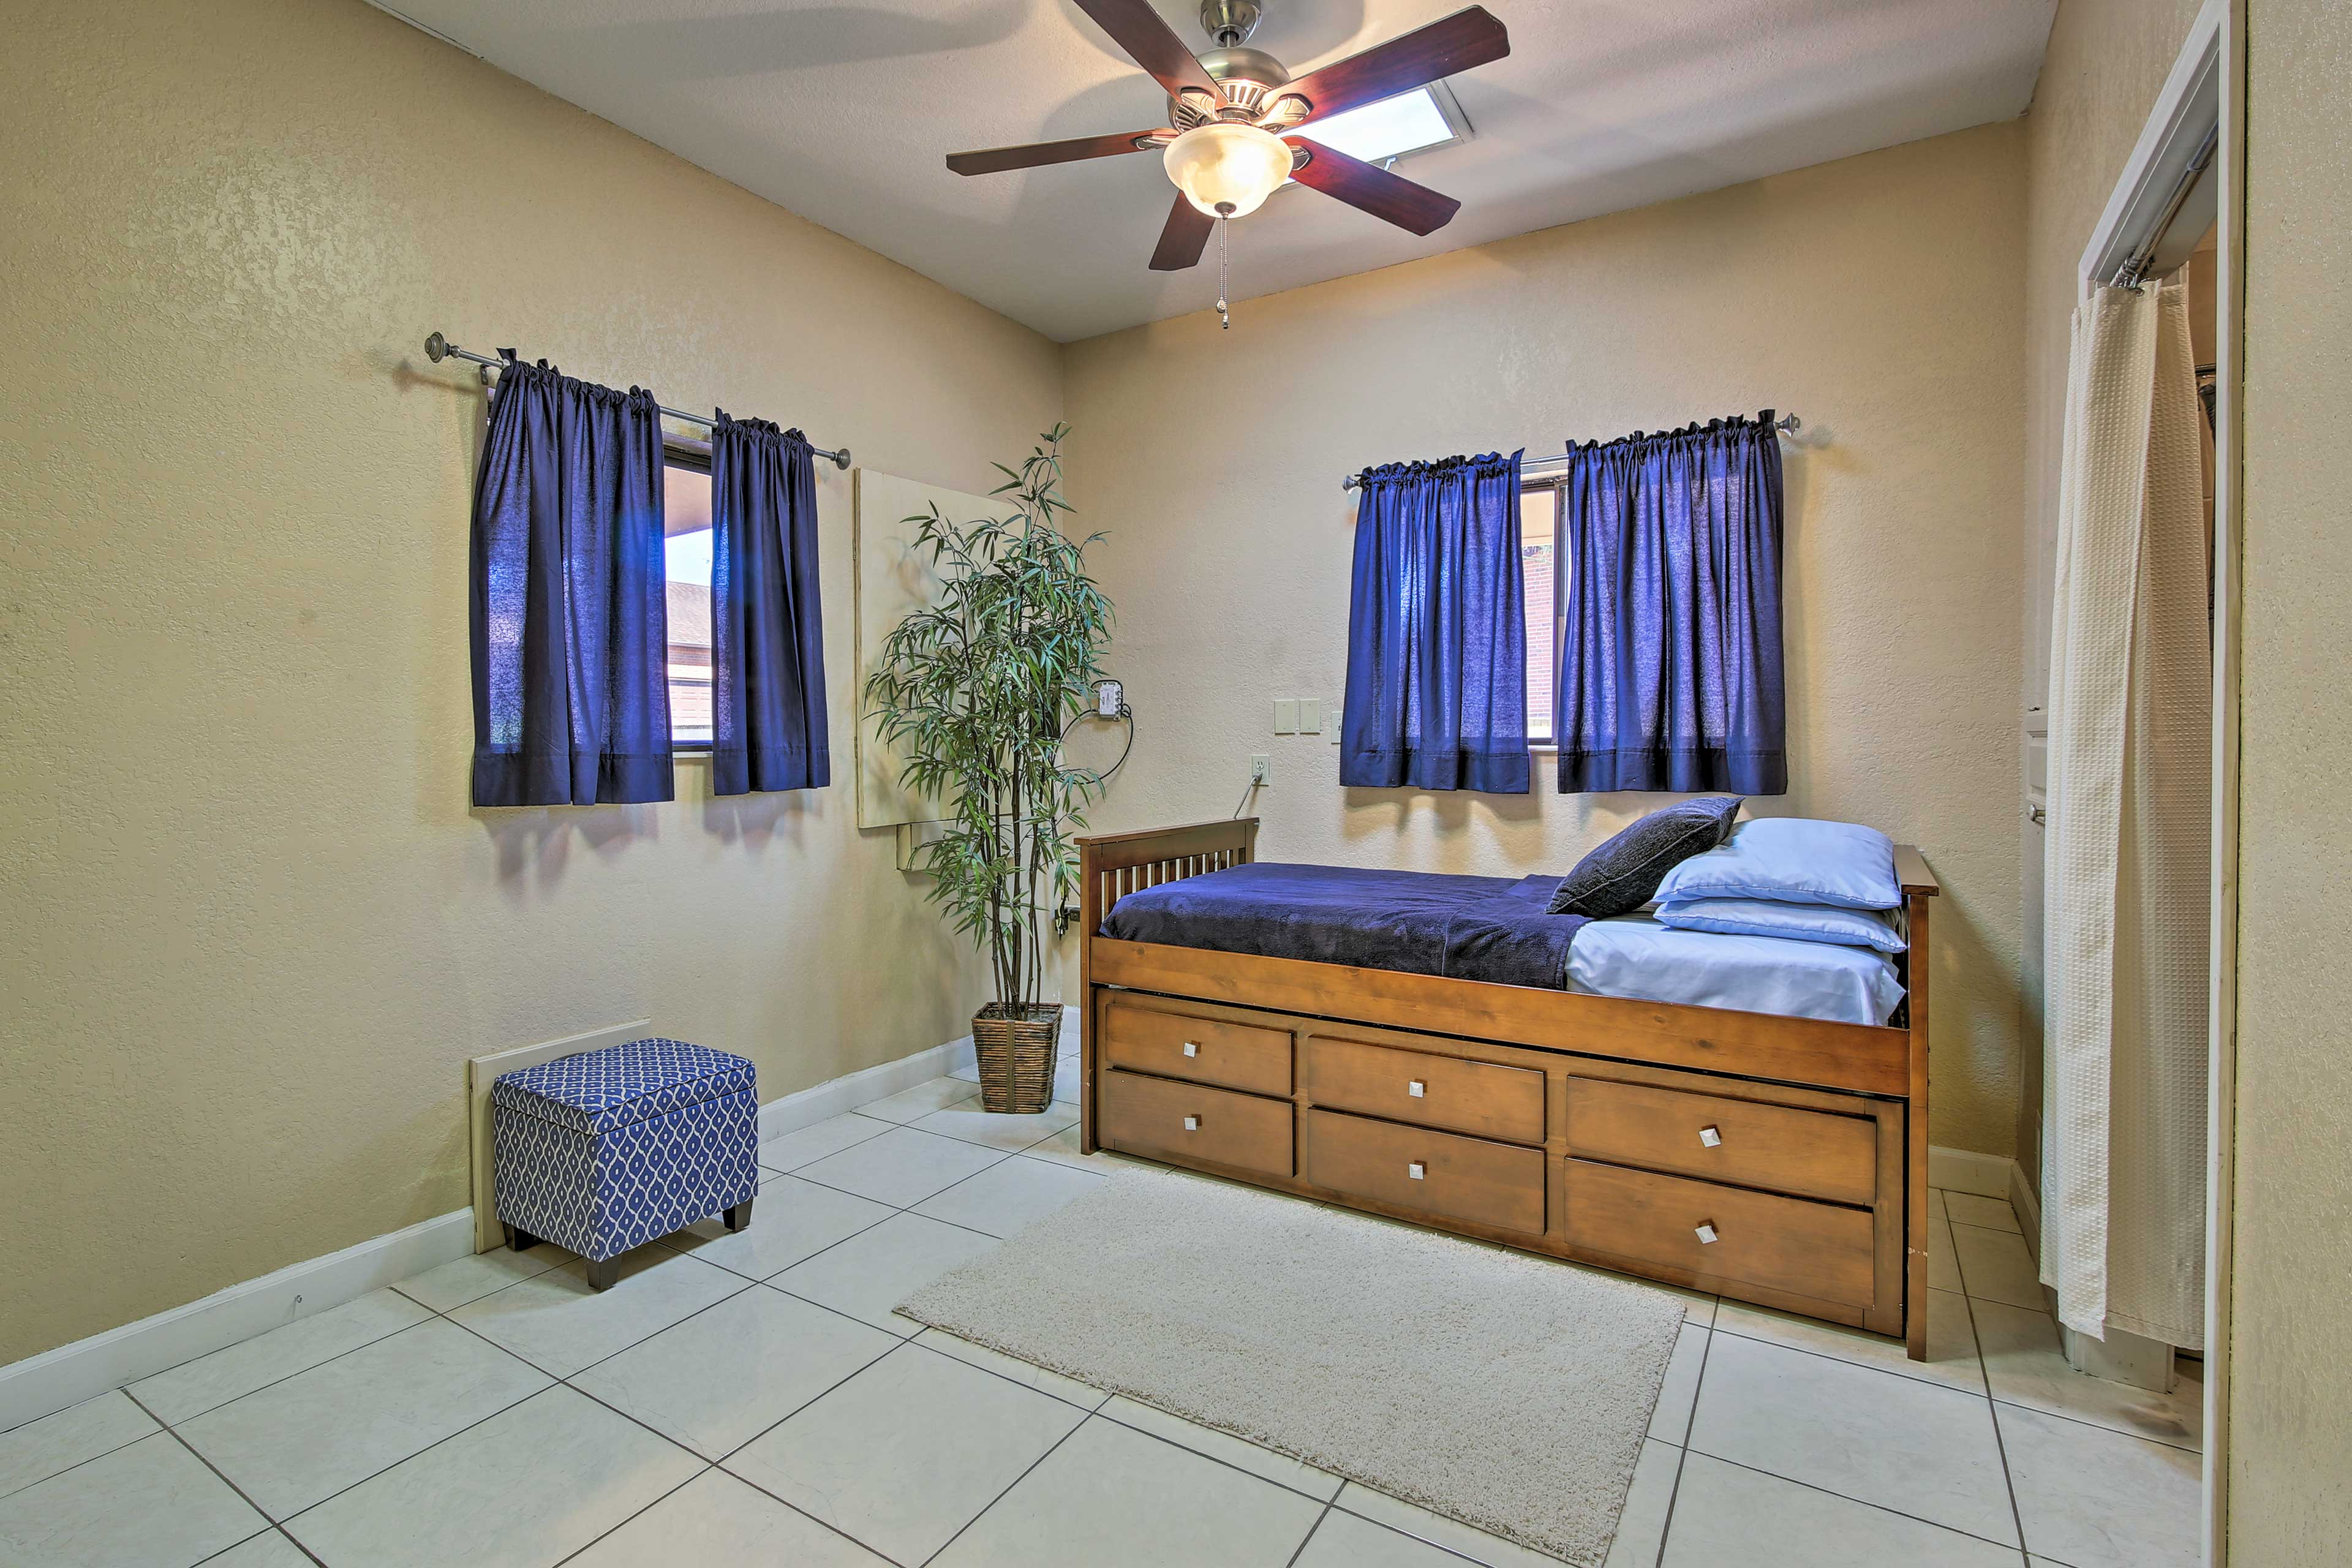 Additional sleeping awaits on this cozy twin bed.